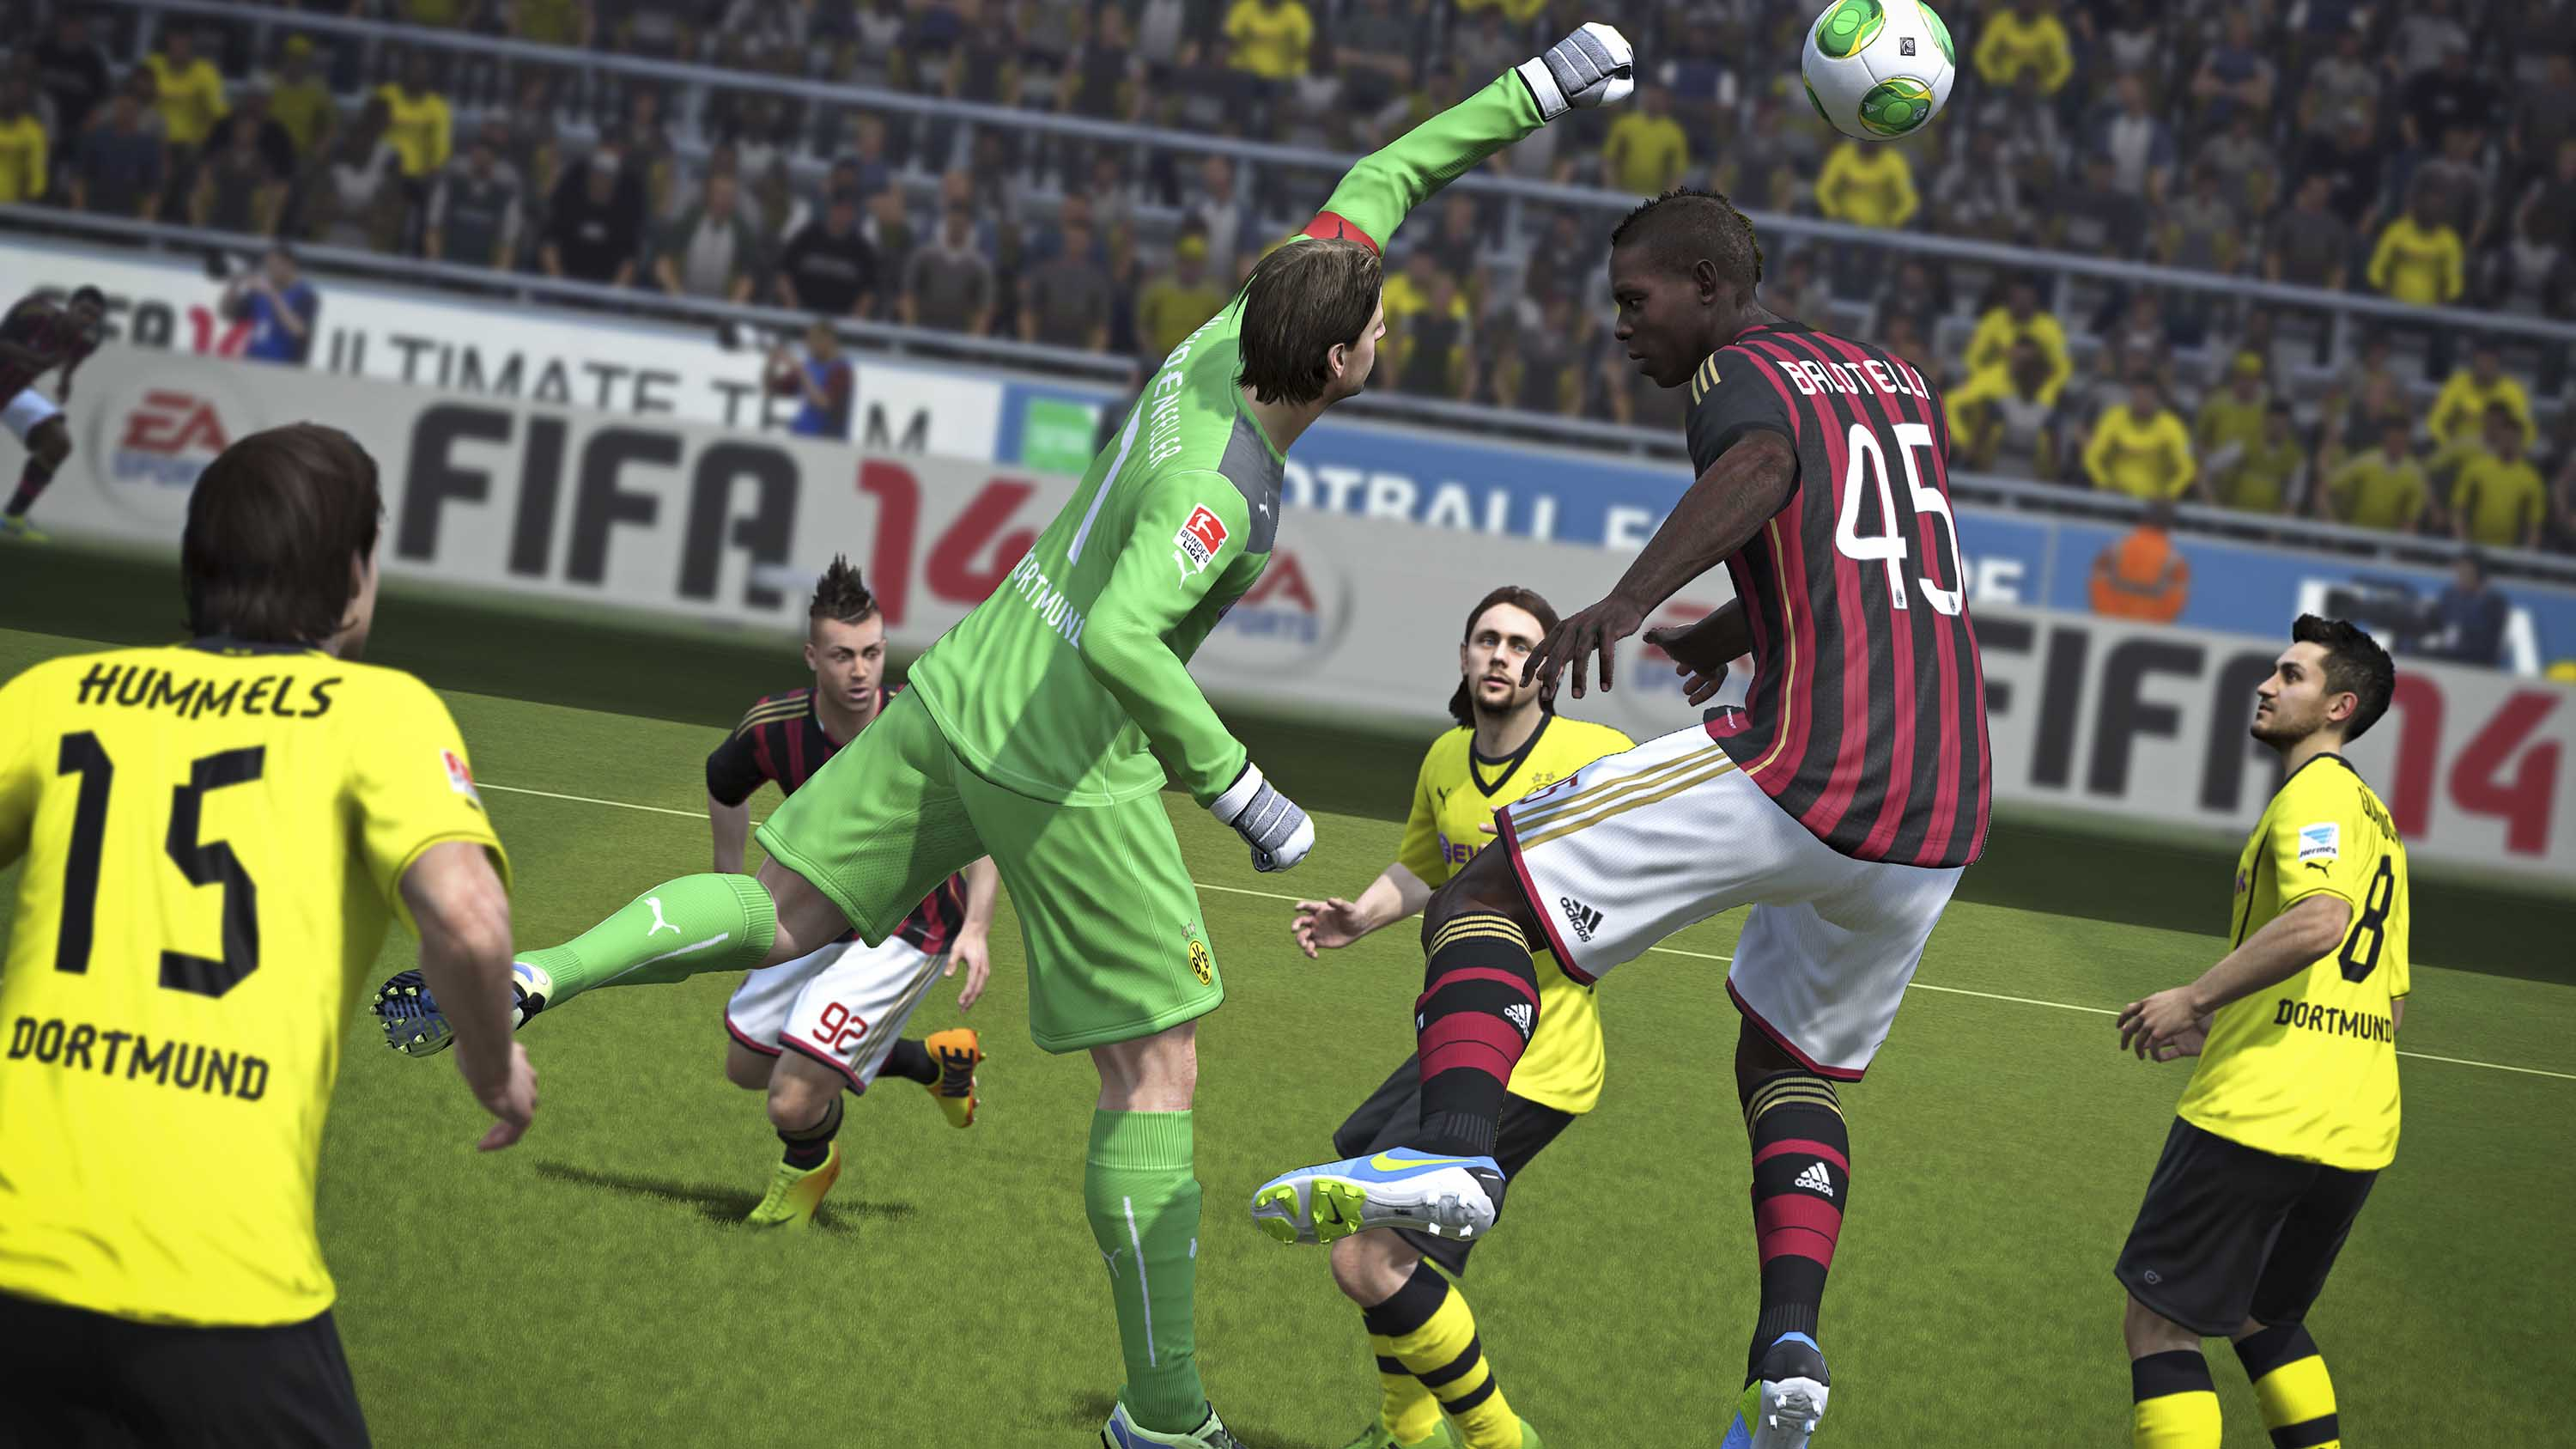 More hd fifa 14 screenshots from the gamescom 2013 voltagebd Image collections